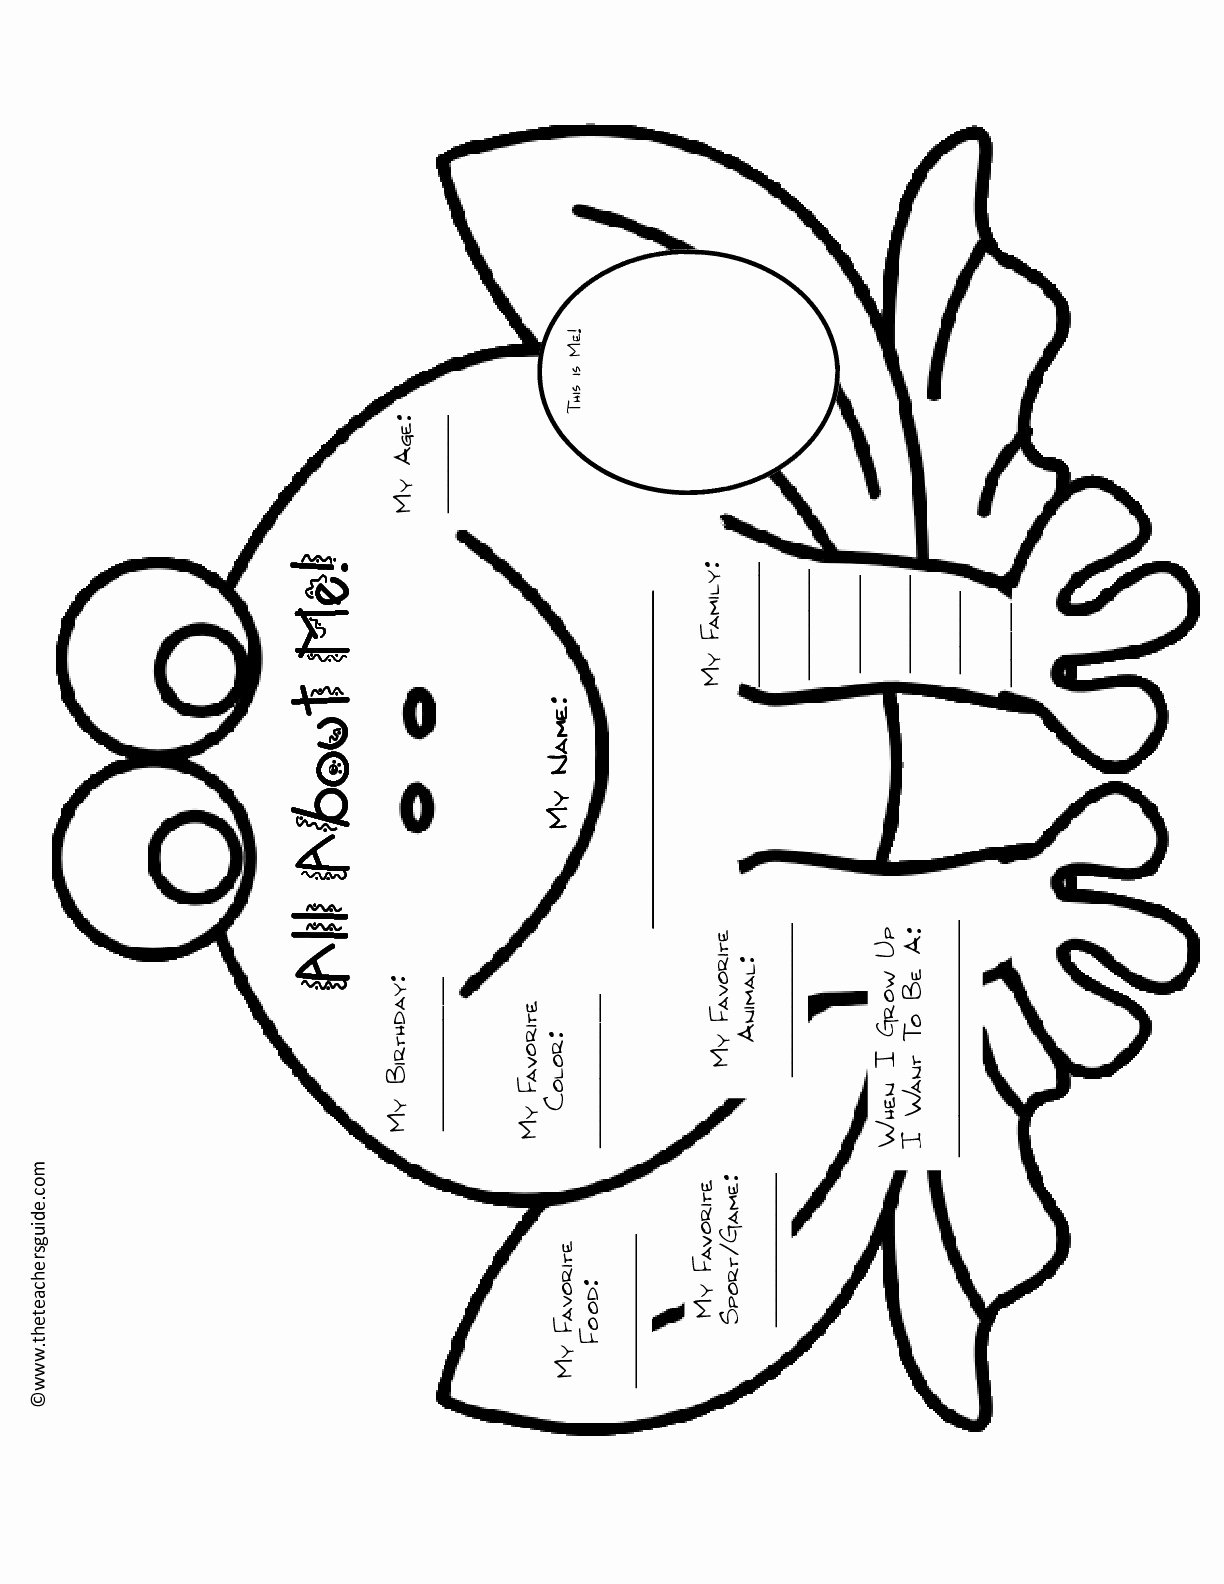 All About Me Worksheet Pdf Awesome All About Me Worksheetstake the Pen